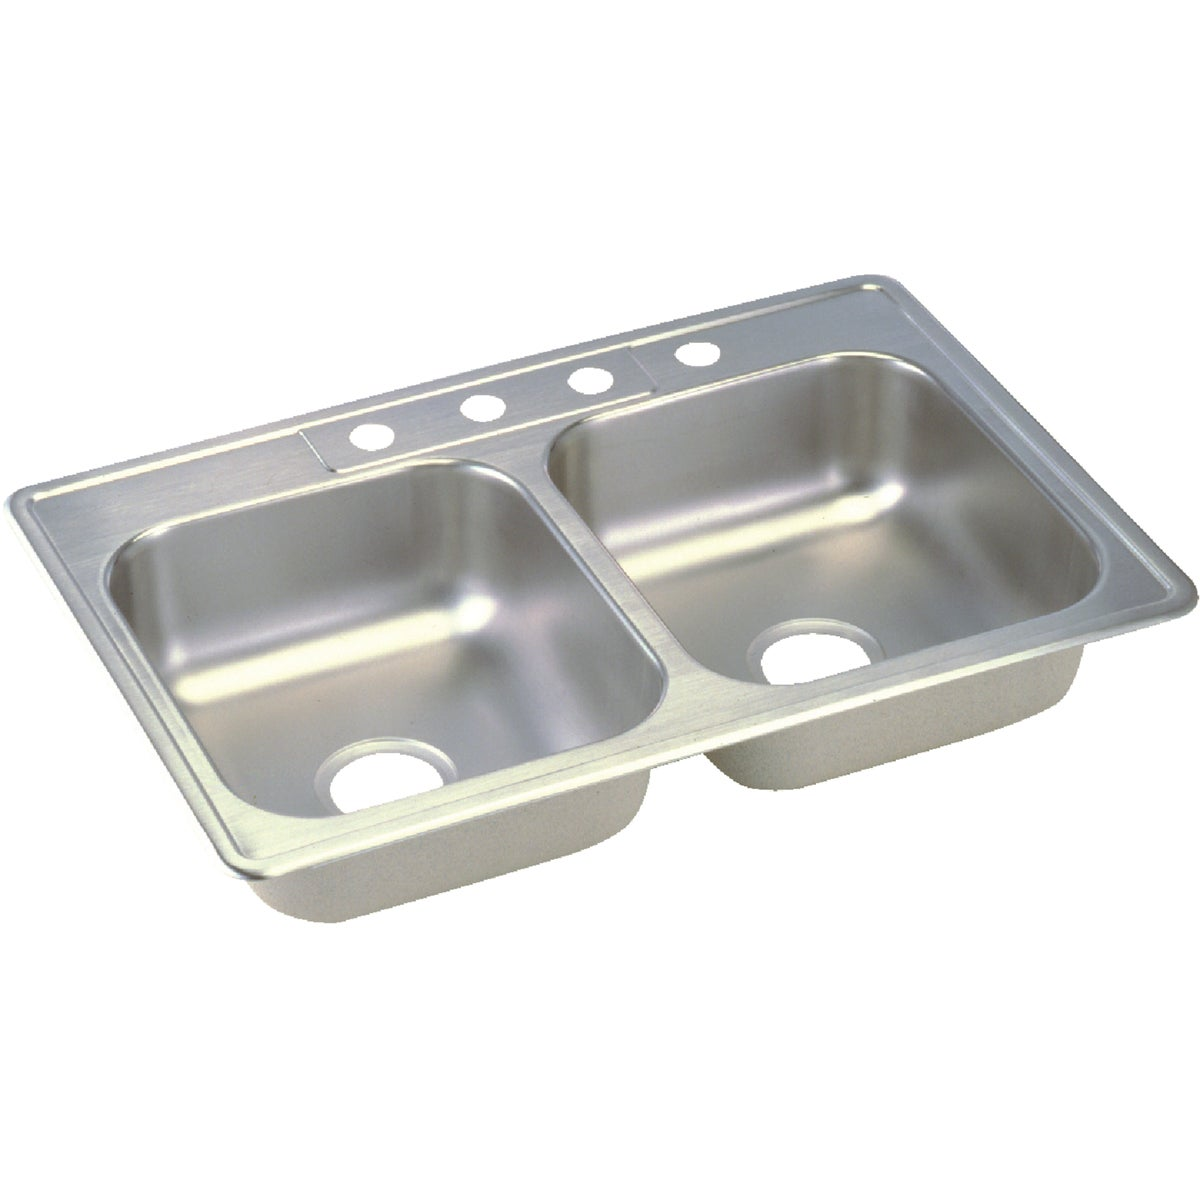 "6"" SS DOUBLE-BOWL SINK - NS233194 by Elkay Neptune"